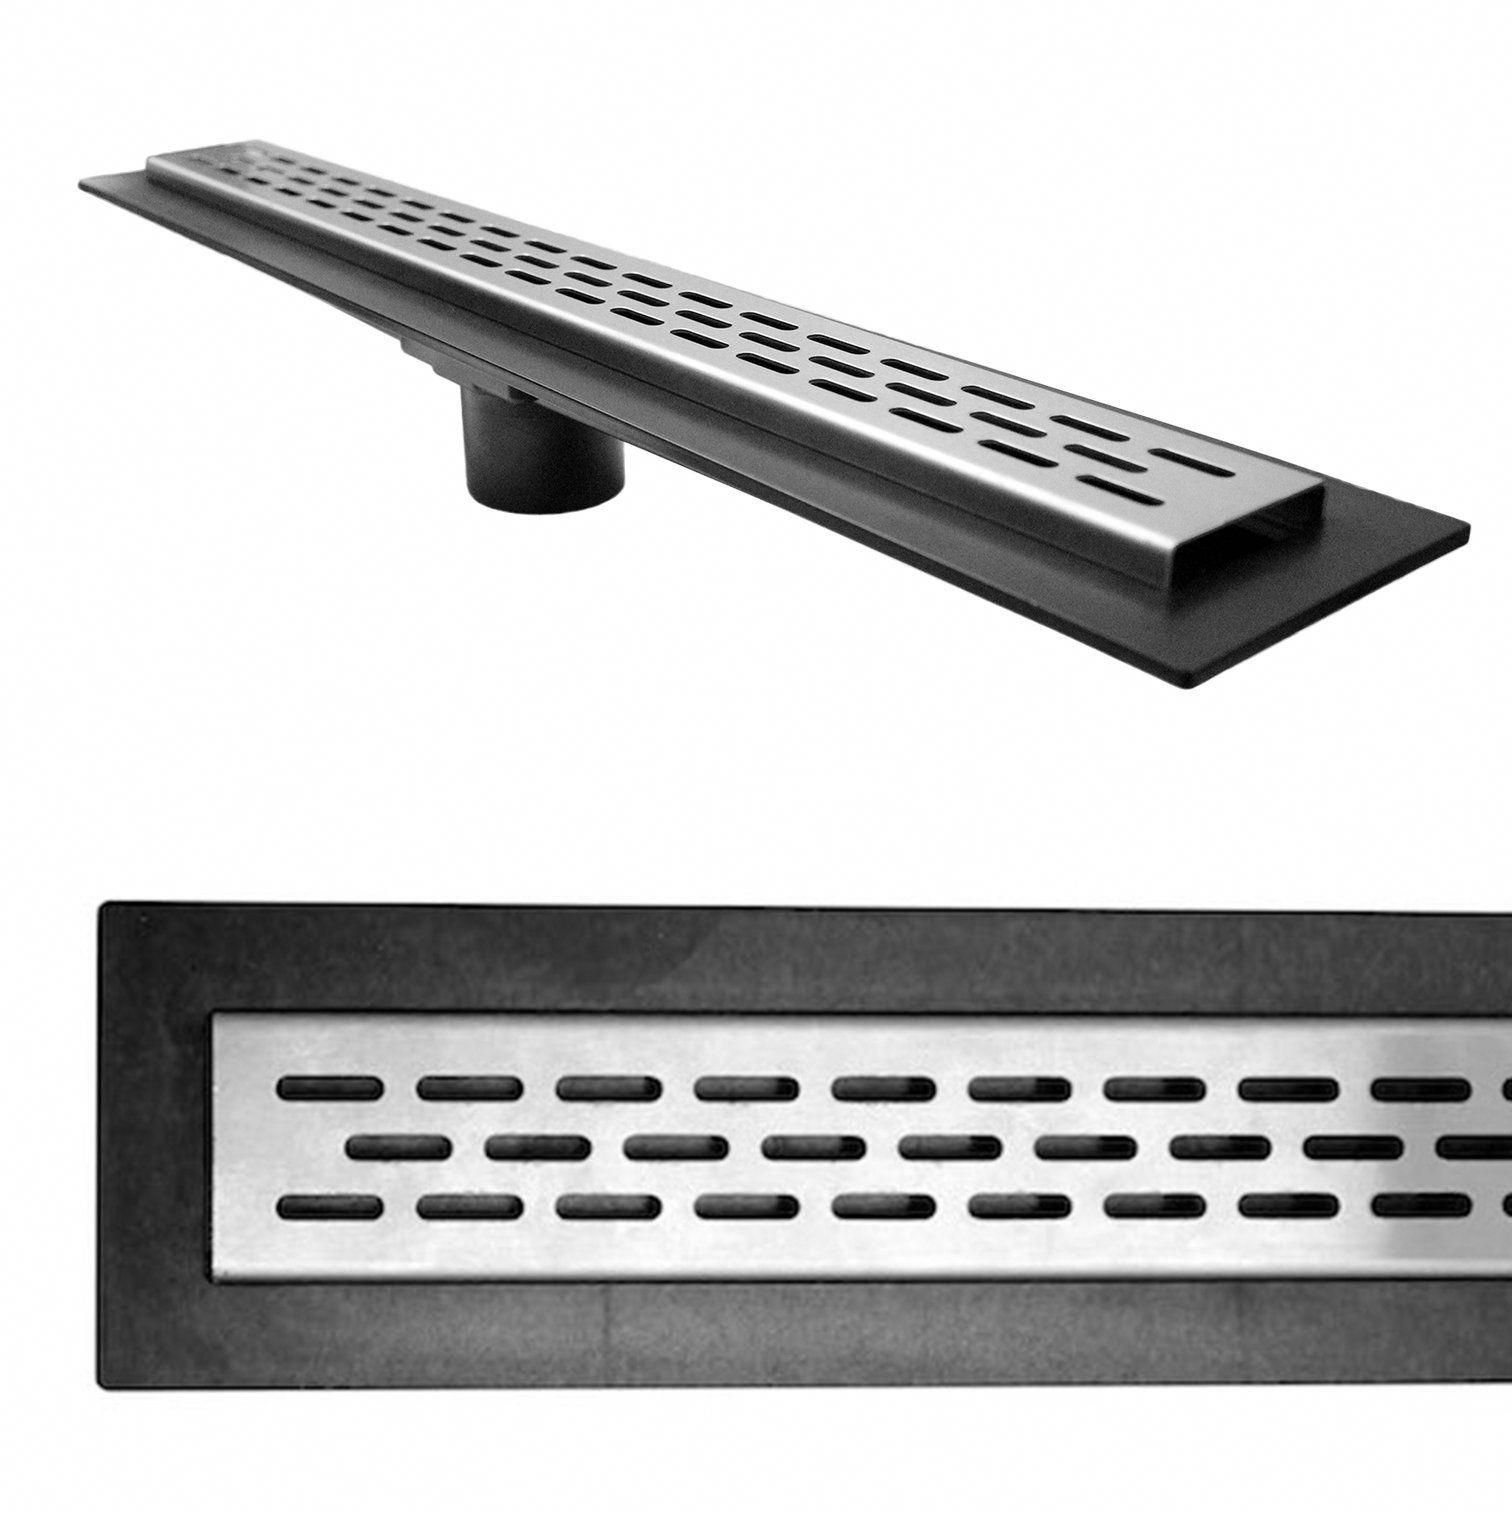 Linear Shower Drain Oval Grate 32 Stainless Steel Drain Body